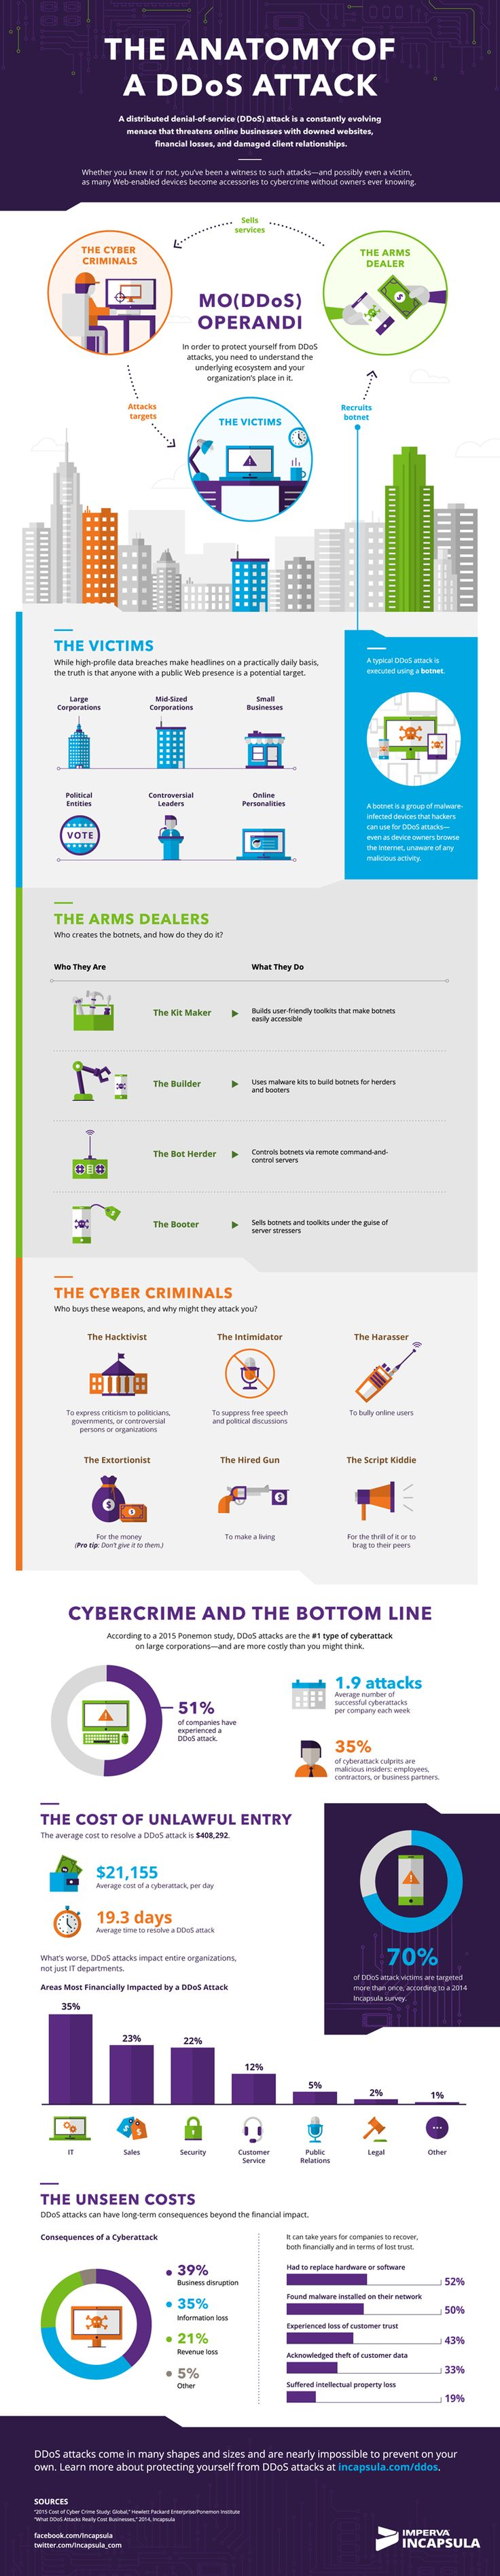 61 best Infographics - InfoSec / CyberSec images on Pinterest | Info ...